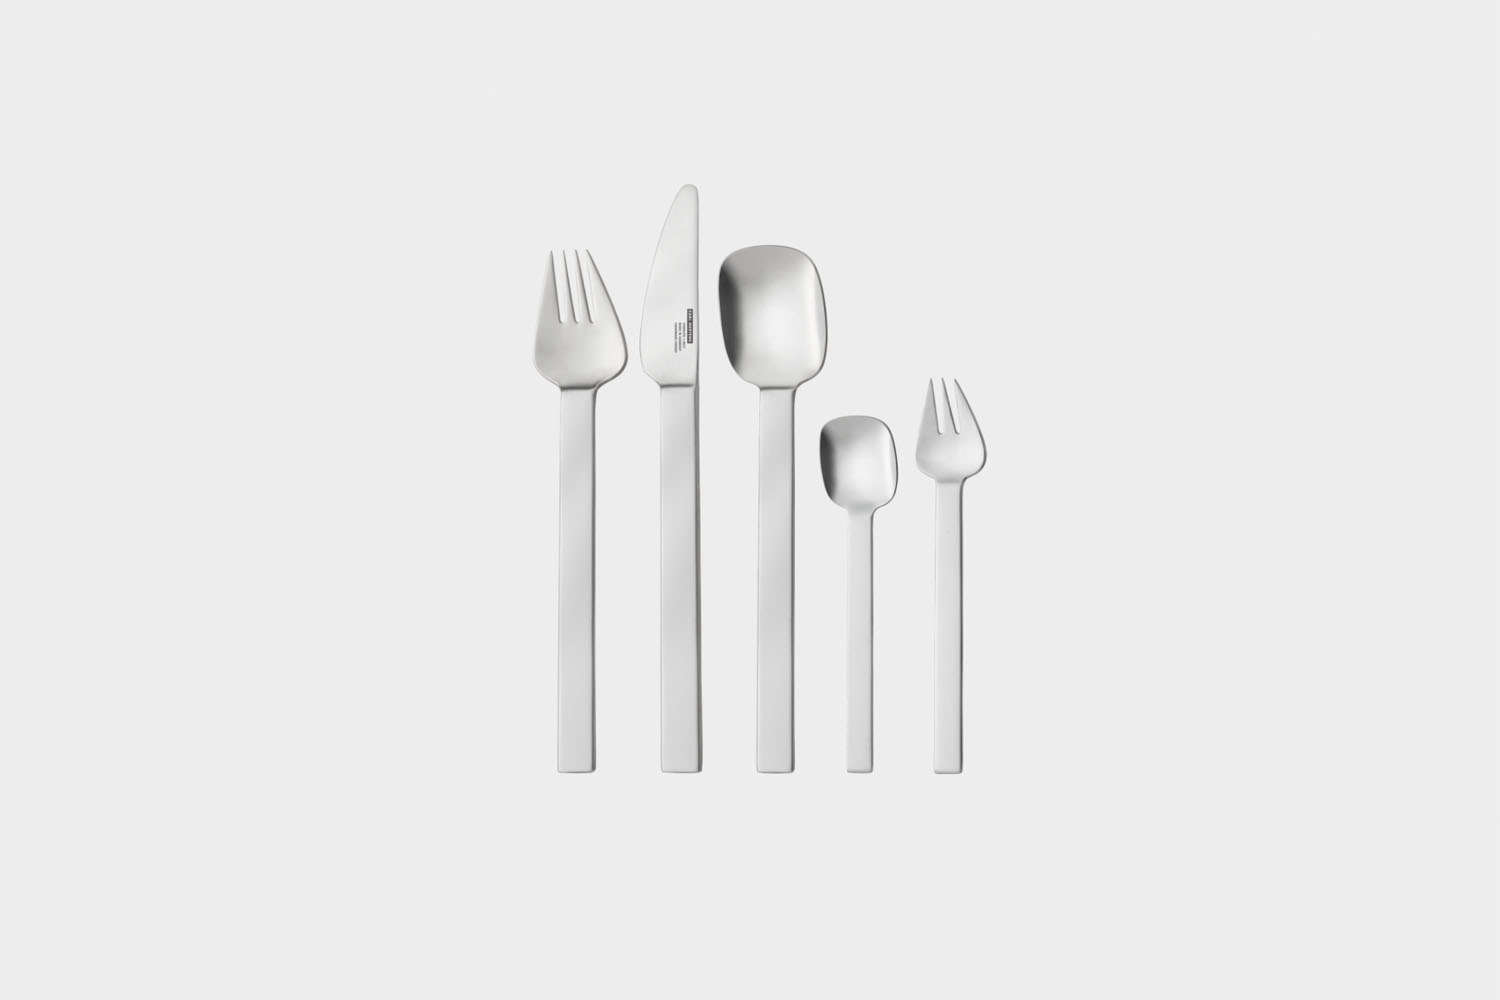 the carl mertens senso sky flatware is sold as a 30 piece set for €3\20. 13